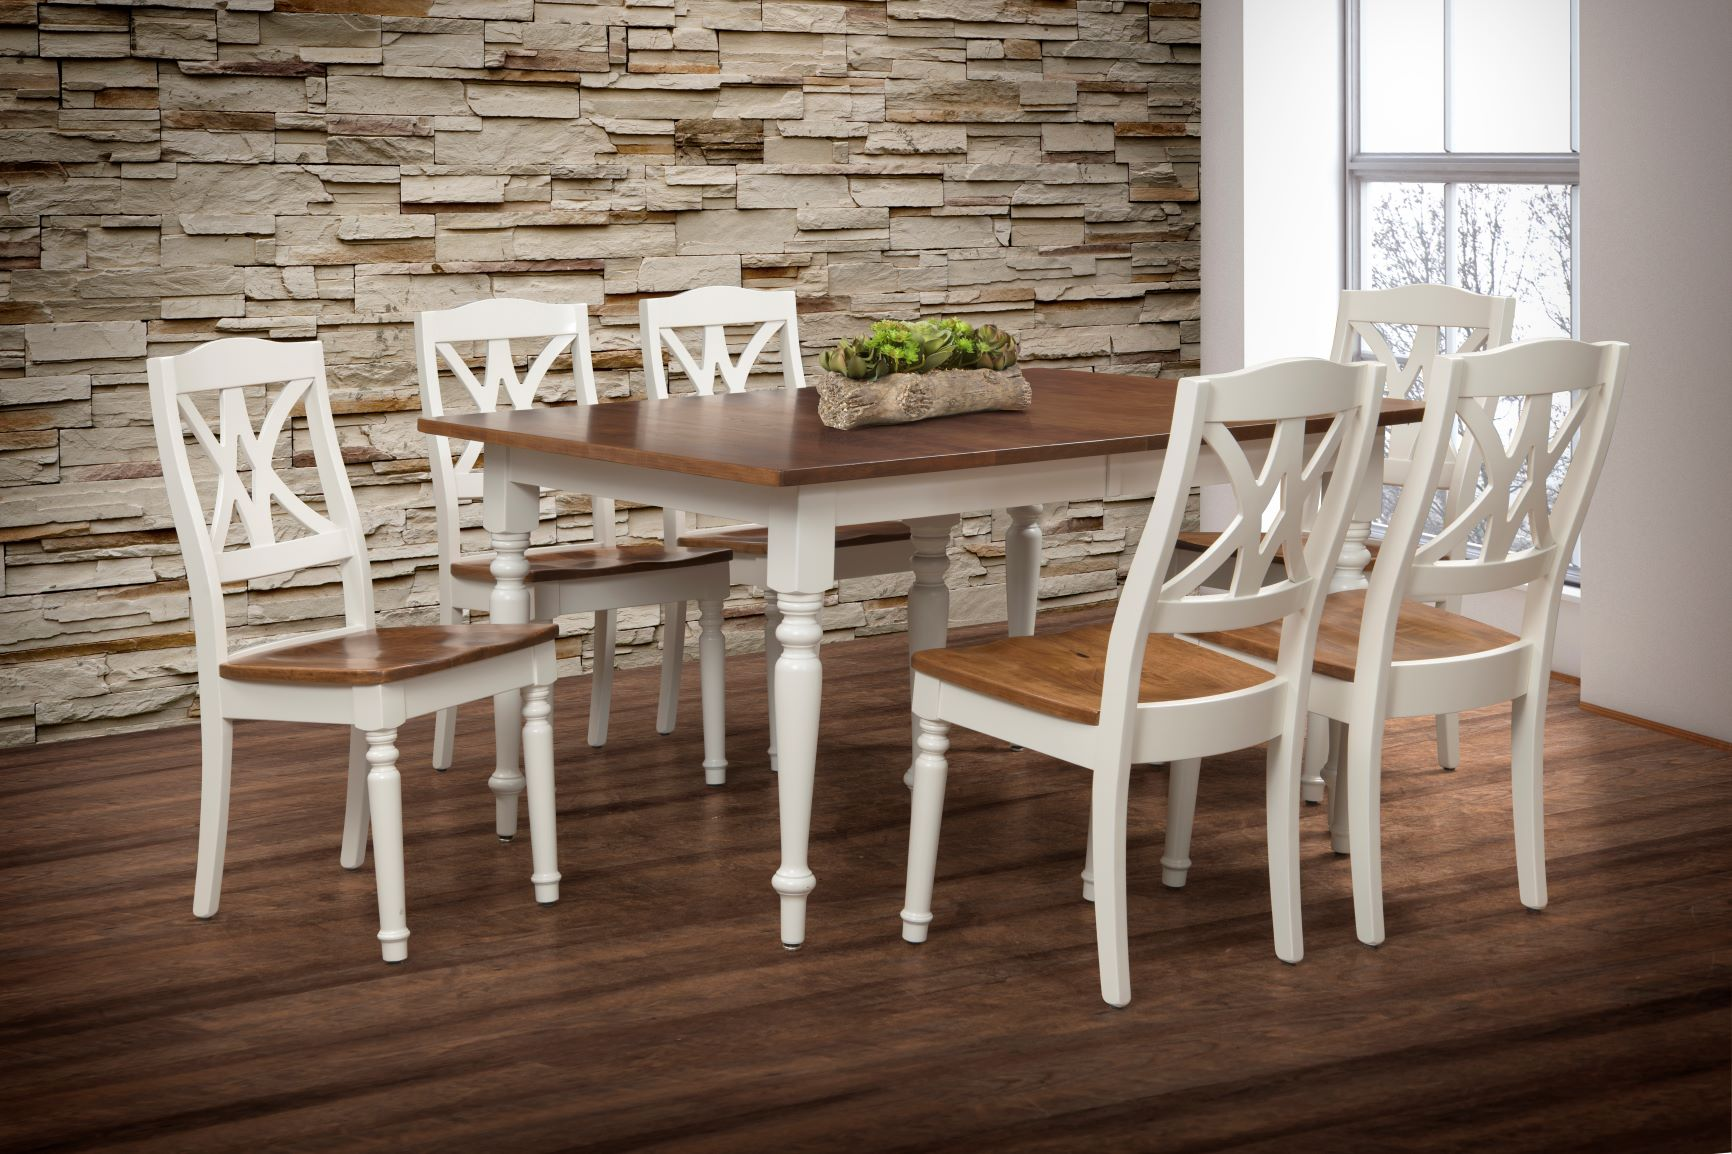 Craftsman dining room table and chairs